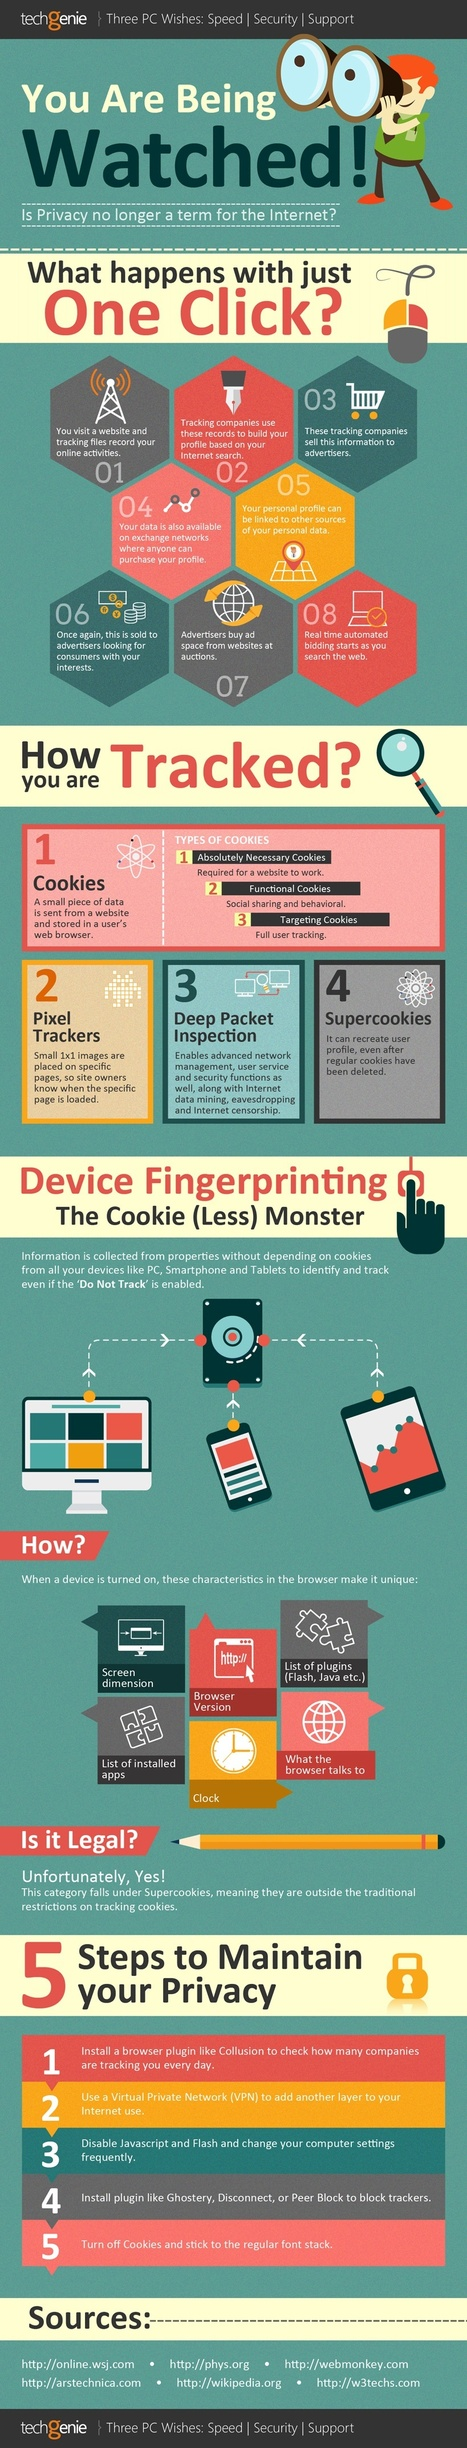 You're Being Watched Online [Infographic] | social media infographics and typography | Scoop.it